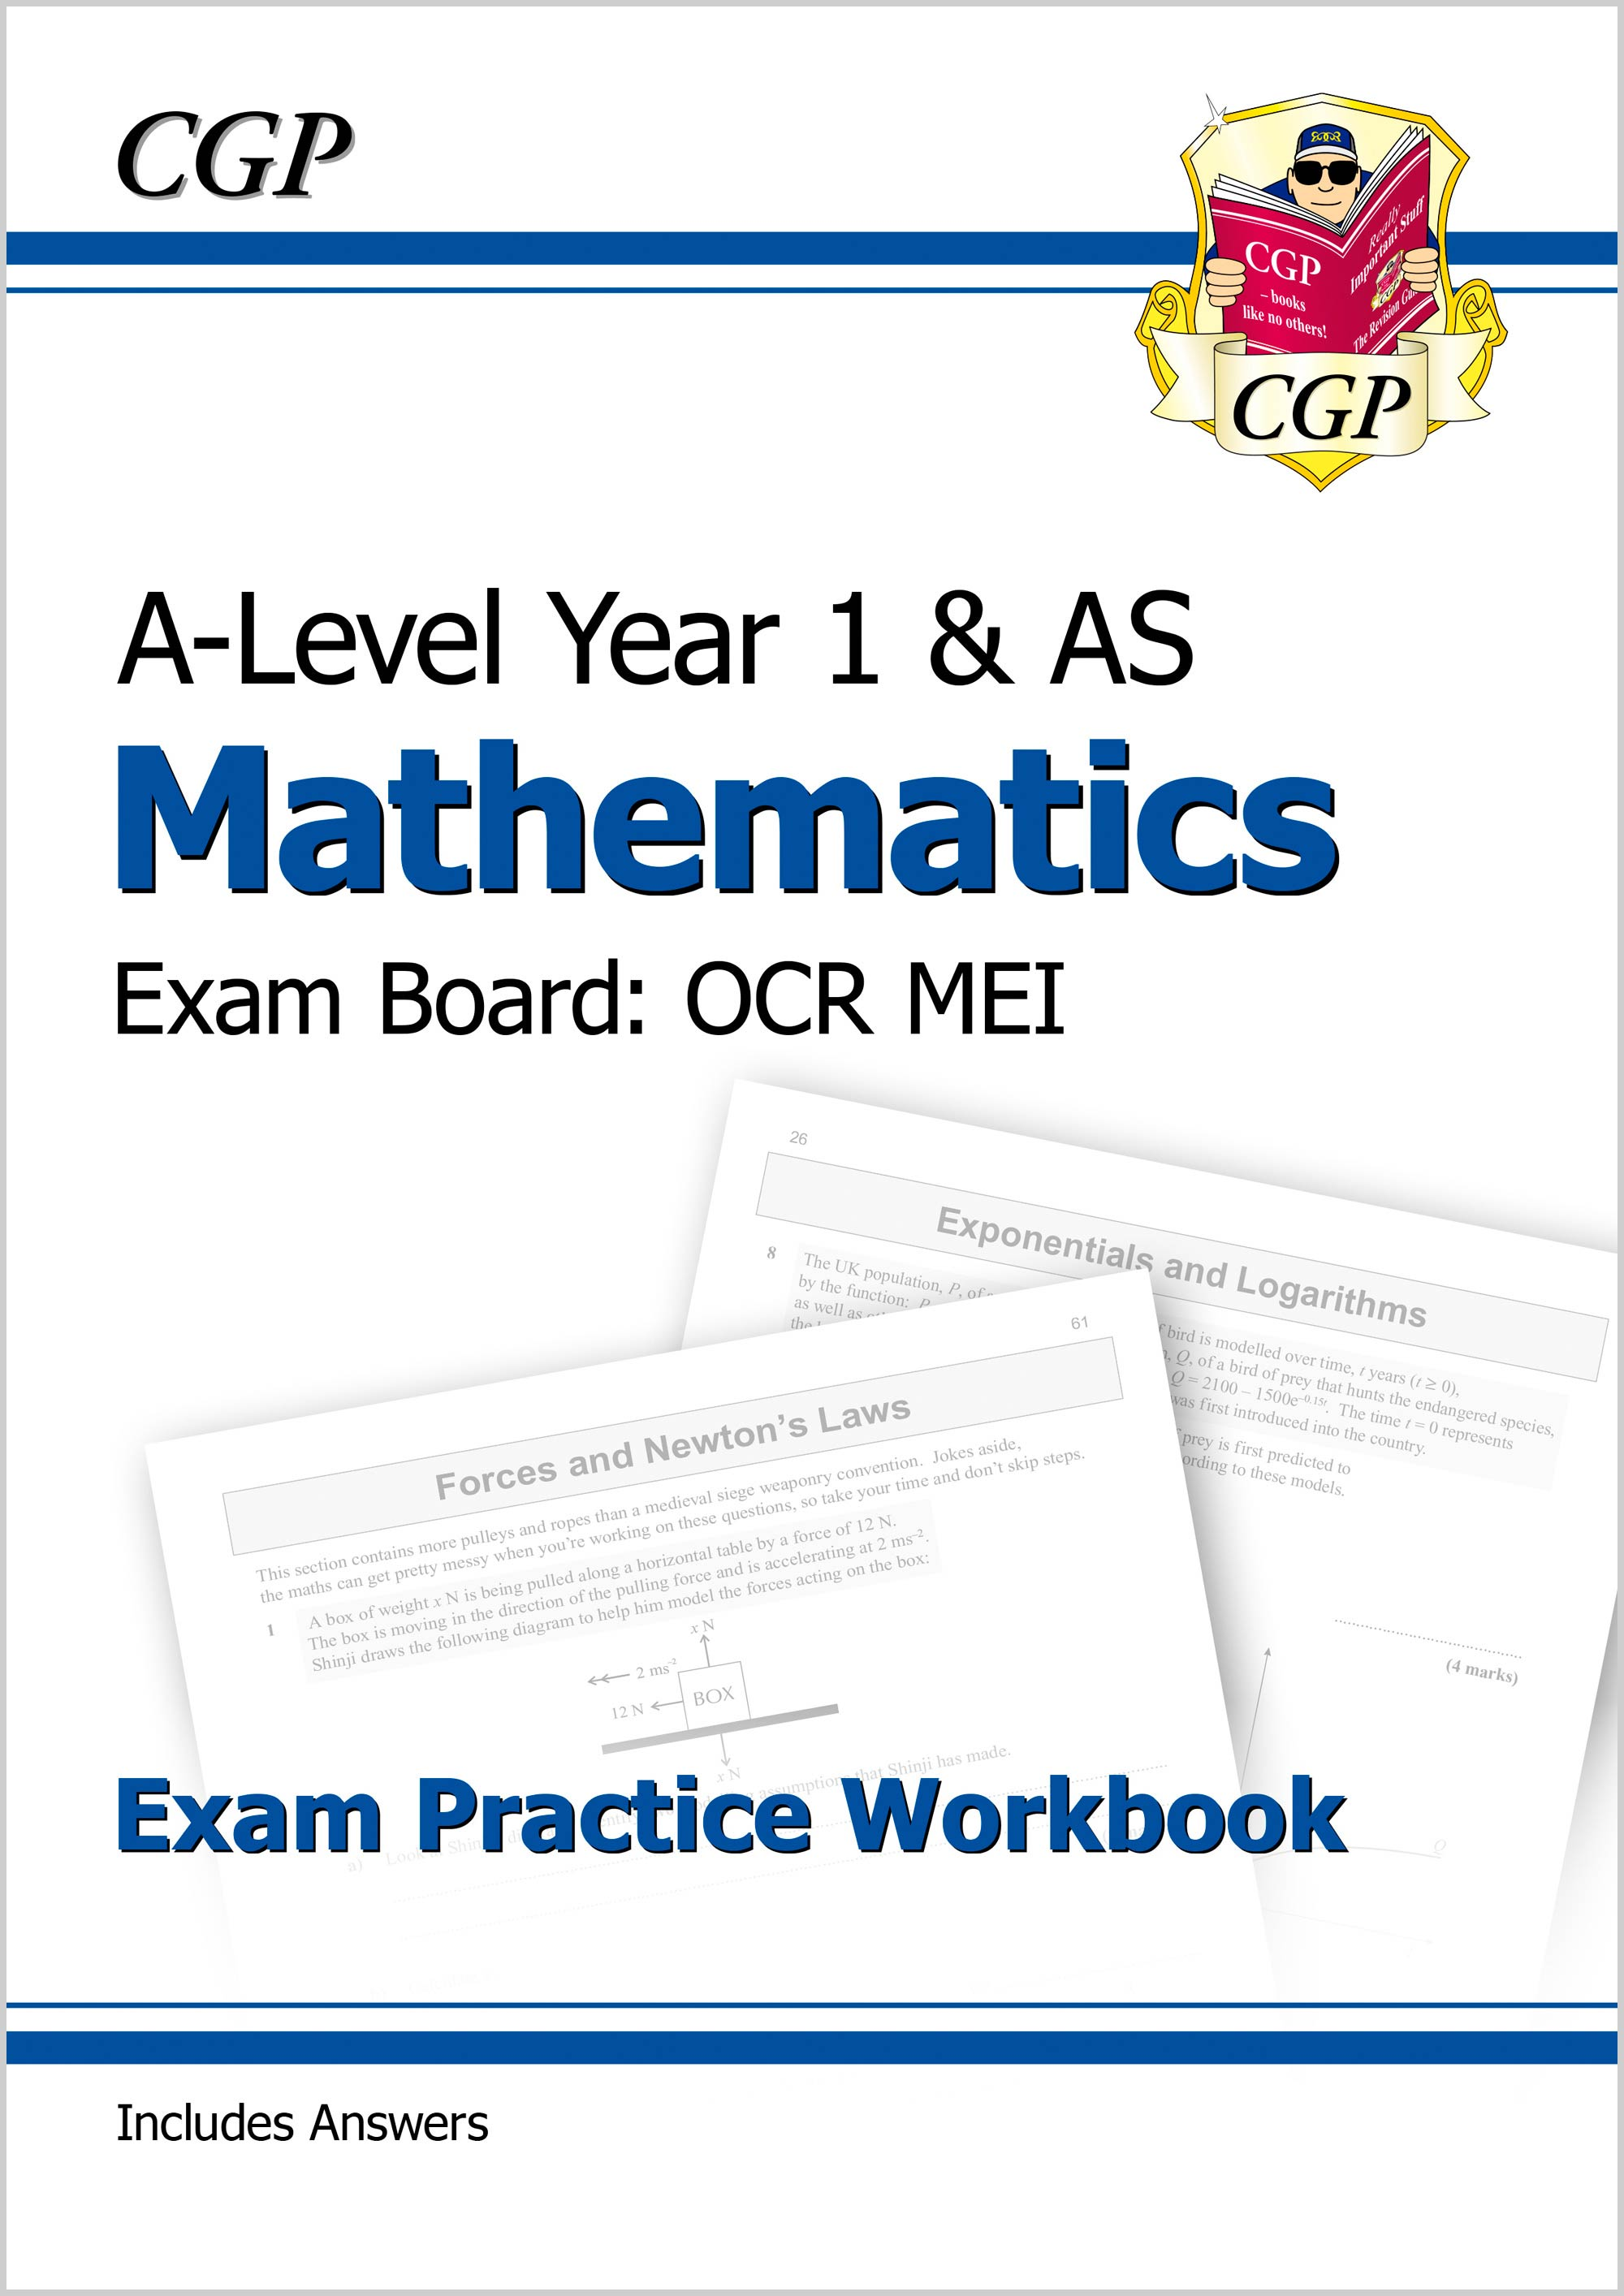 MRMQ51DK - New A-Level Maths for OCR MEI: Year 1 & AS Exam Practice Workbook